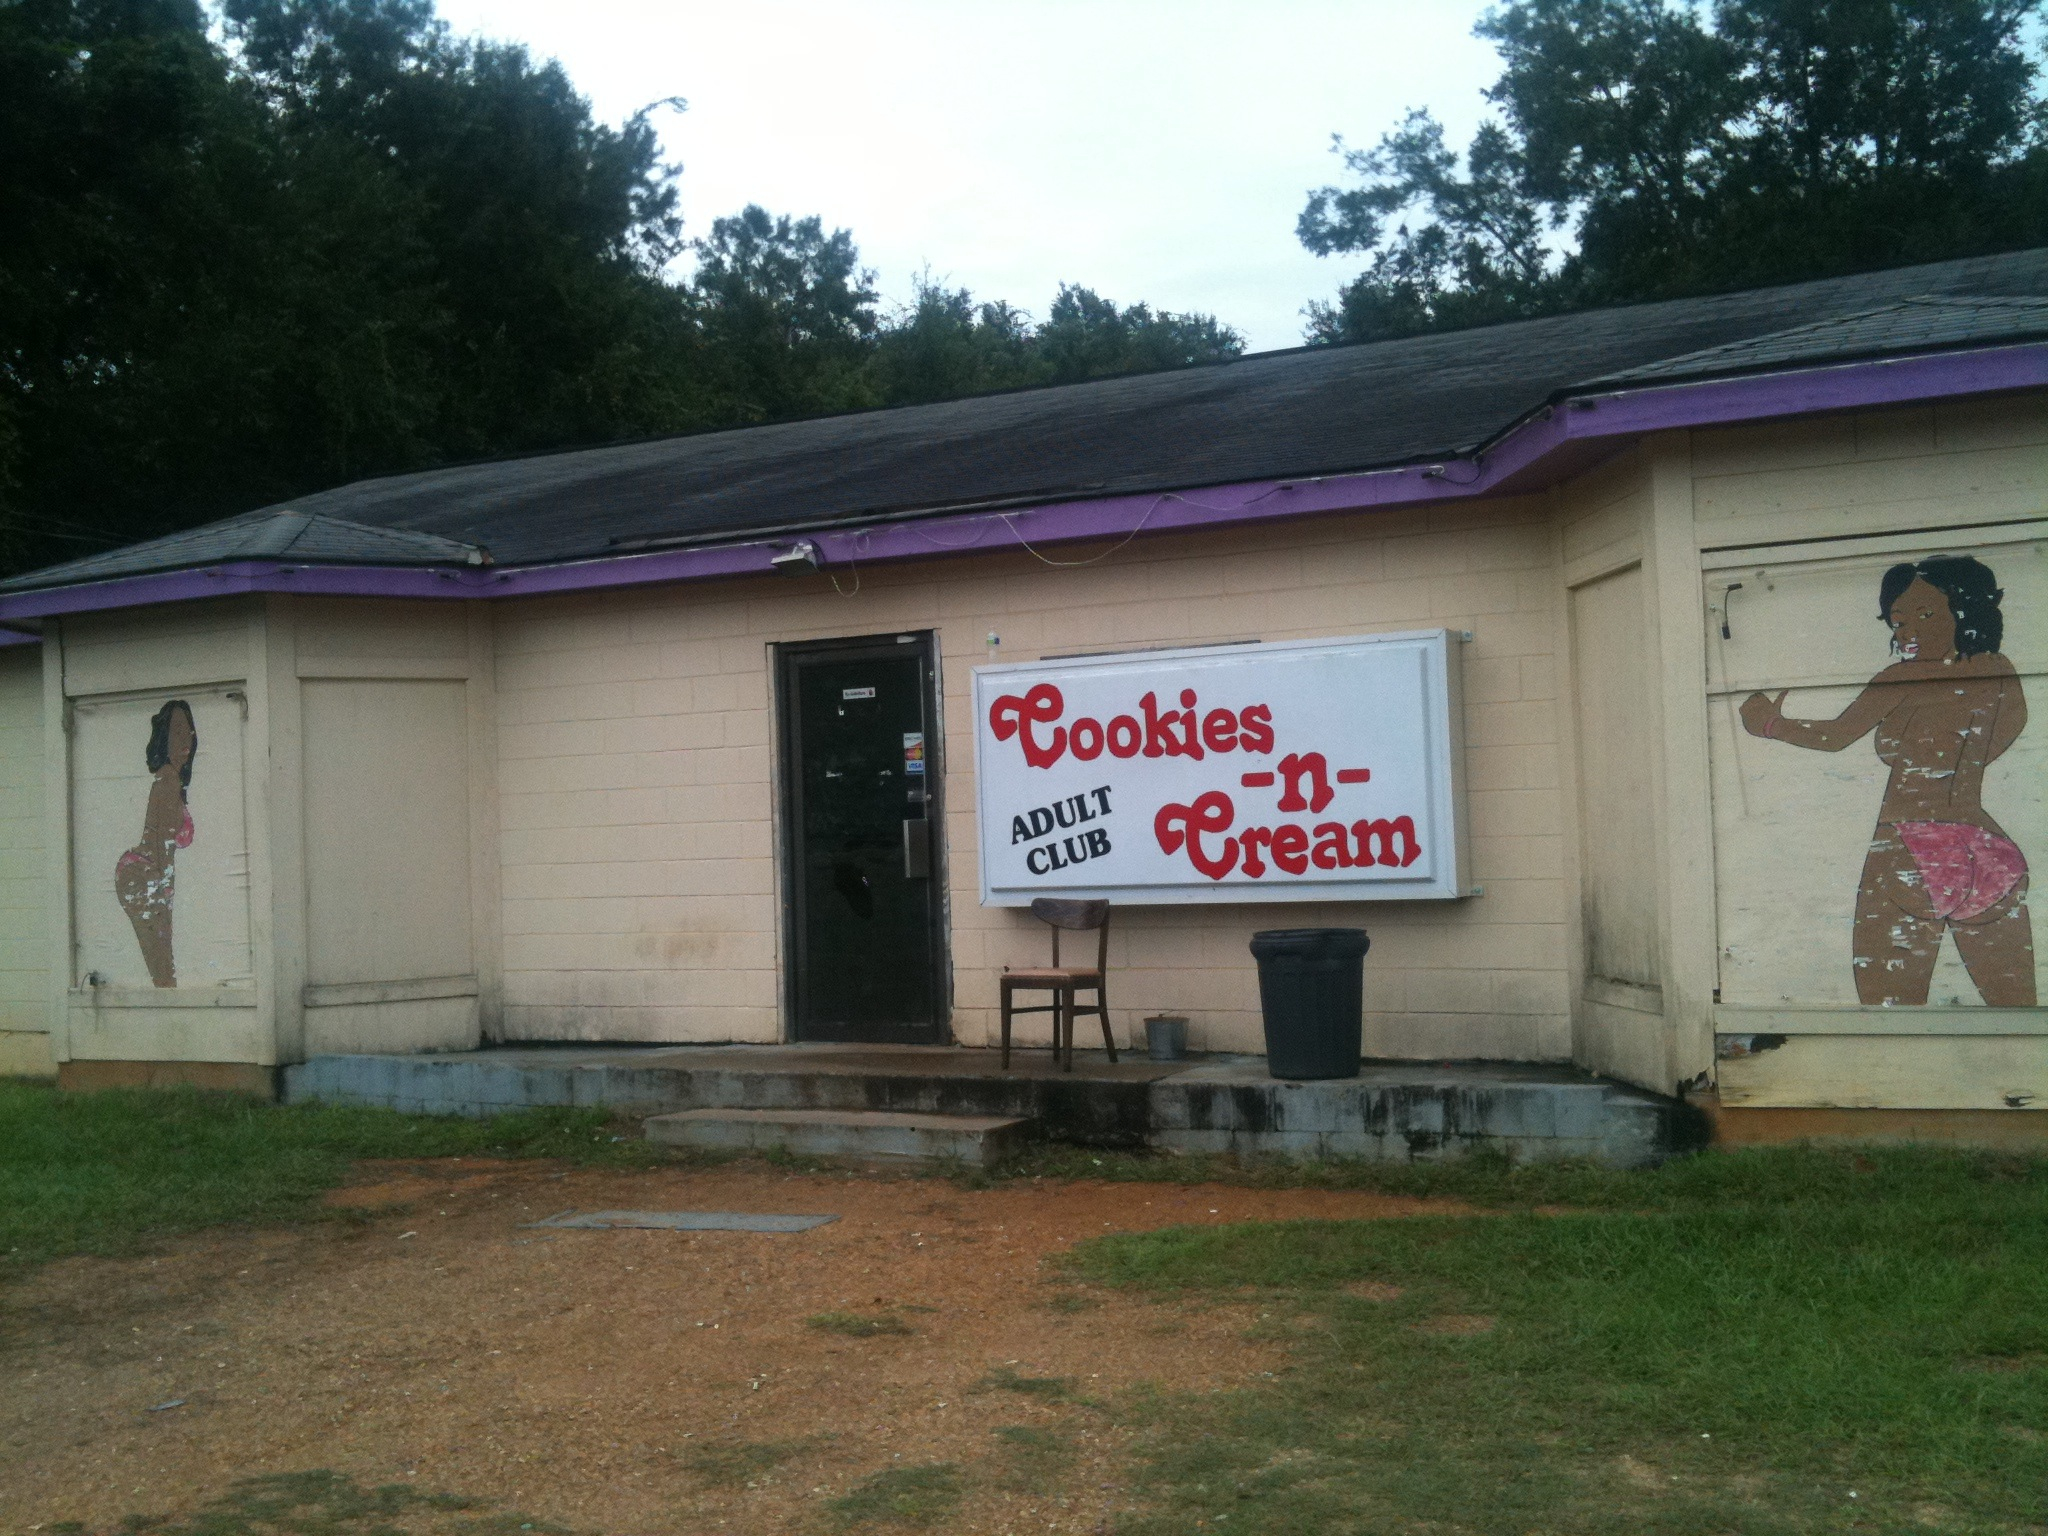 Consider, that Mobile alabama strip clubs